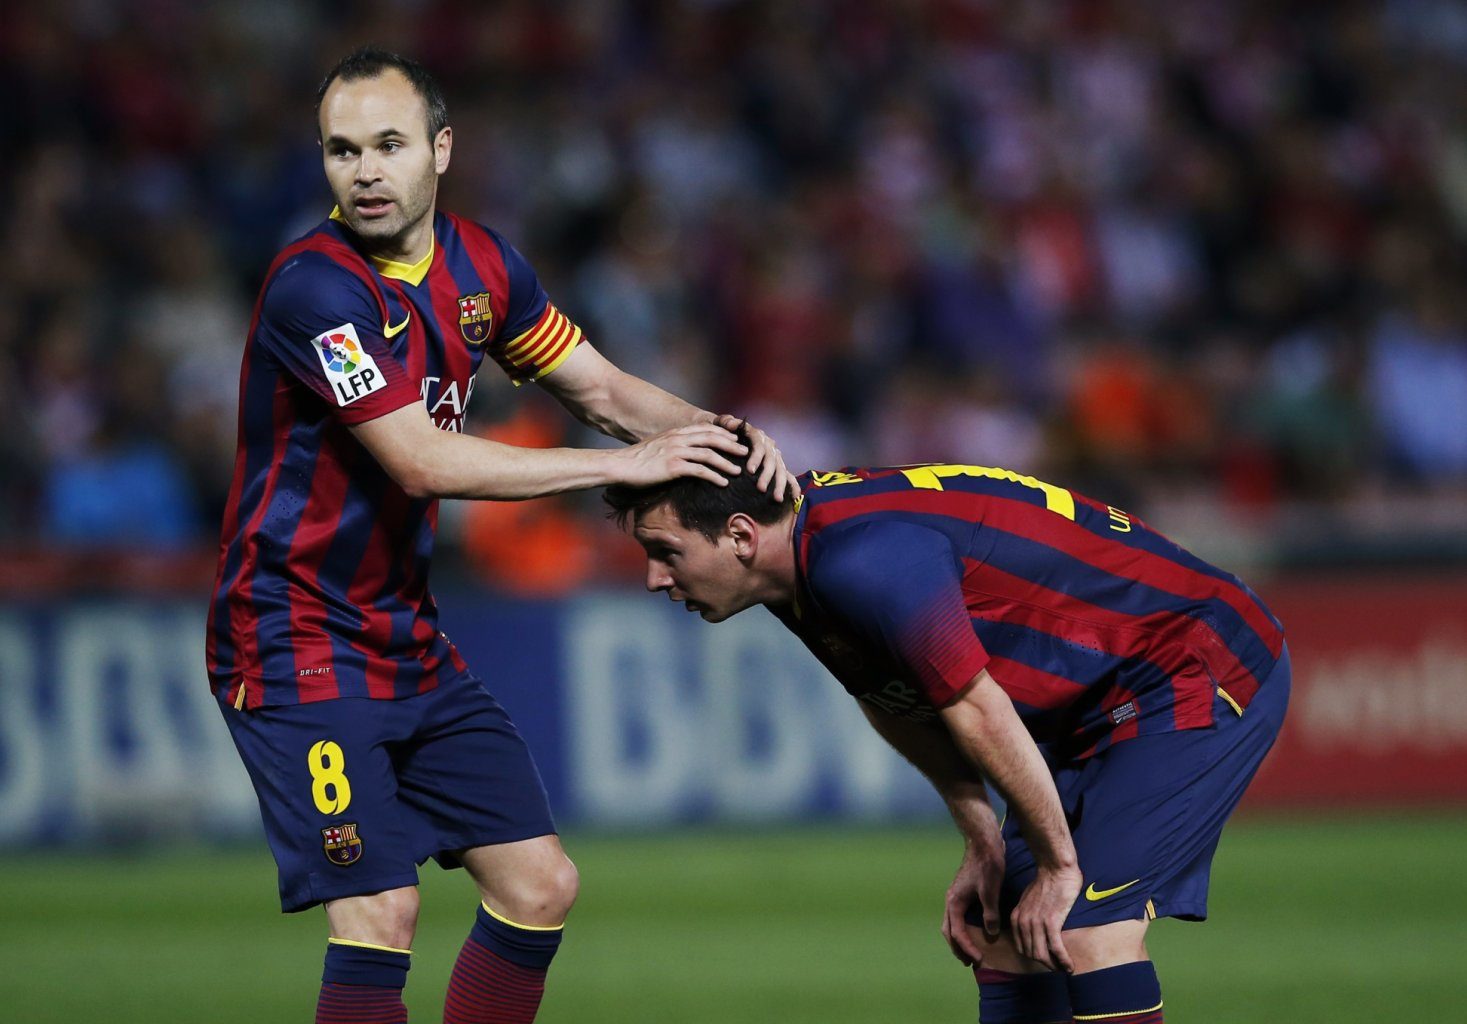 Lionel Messi and Iniesta in a gay pose